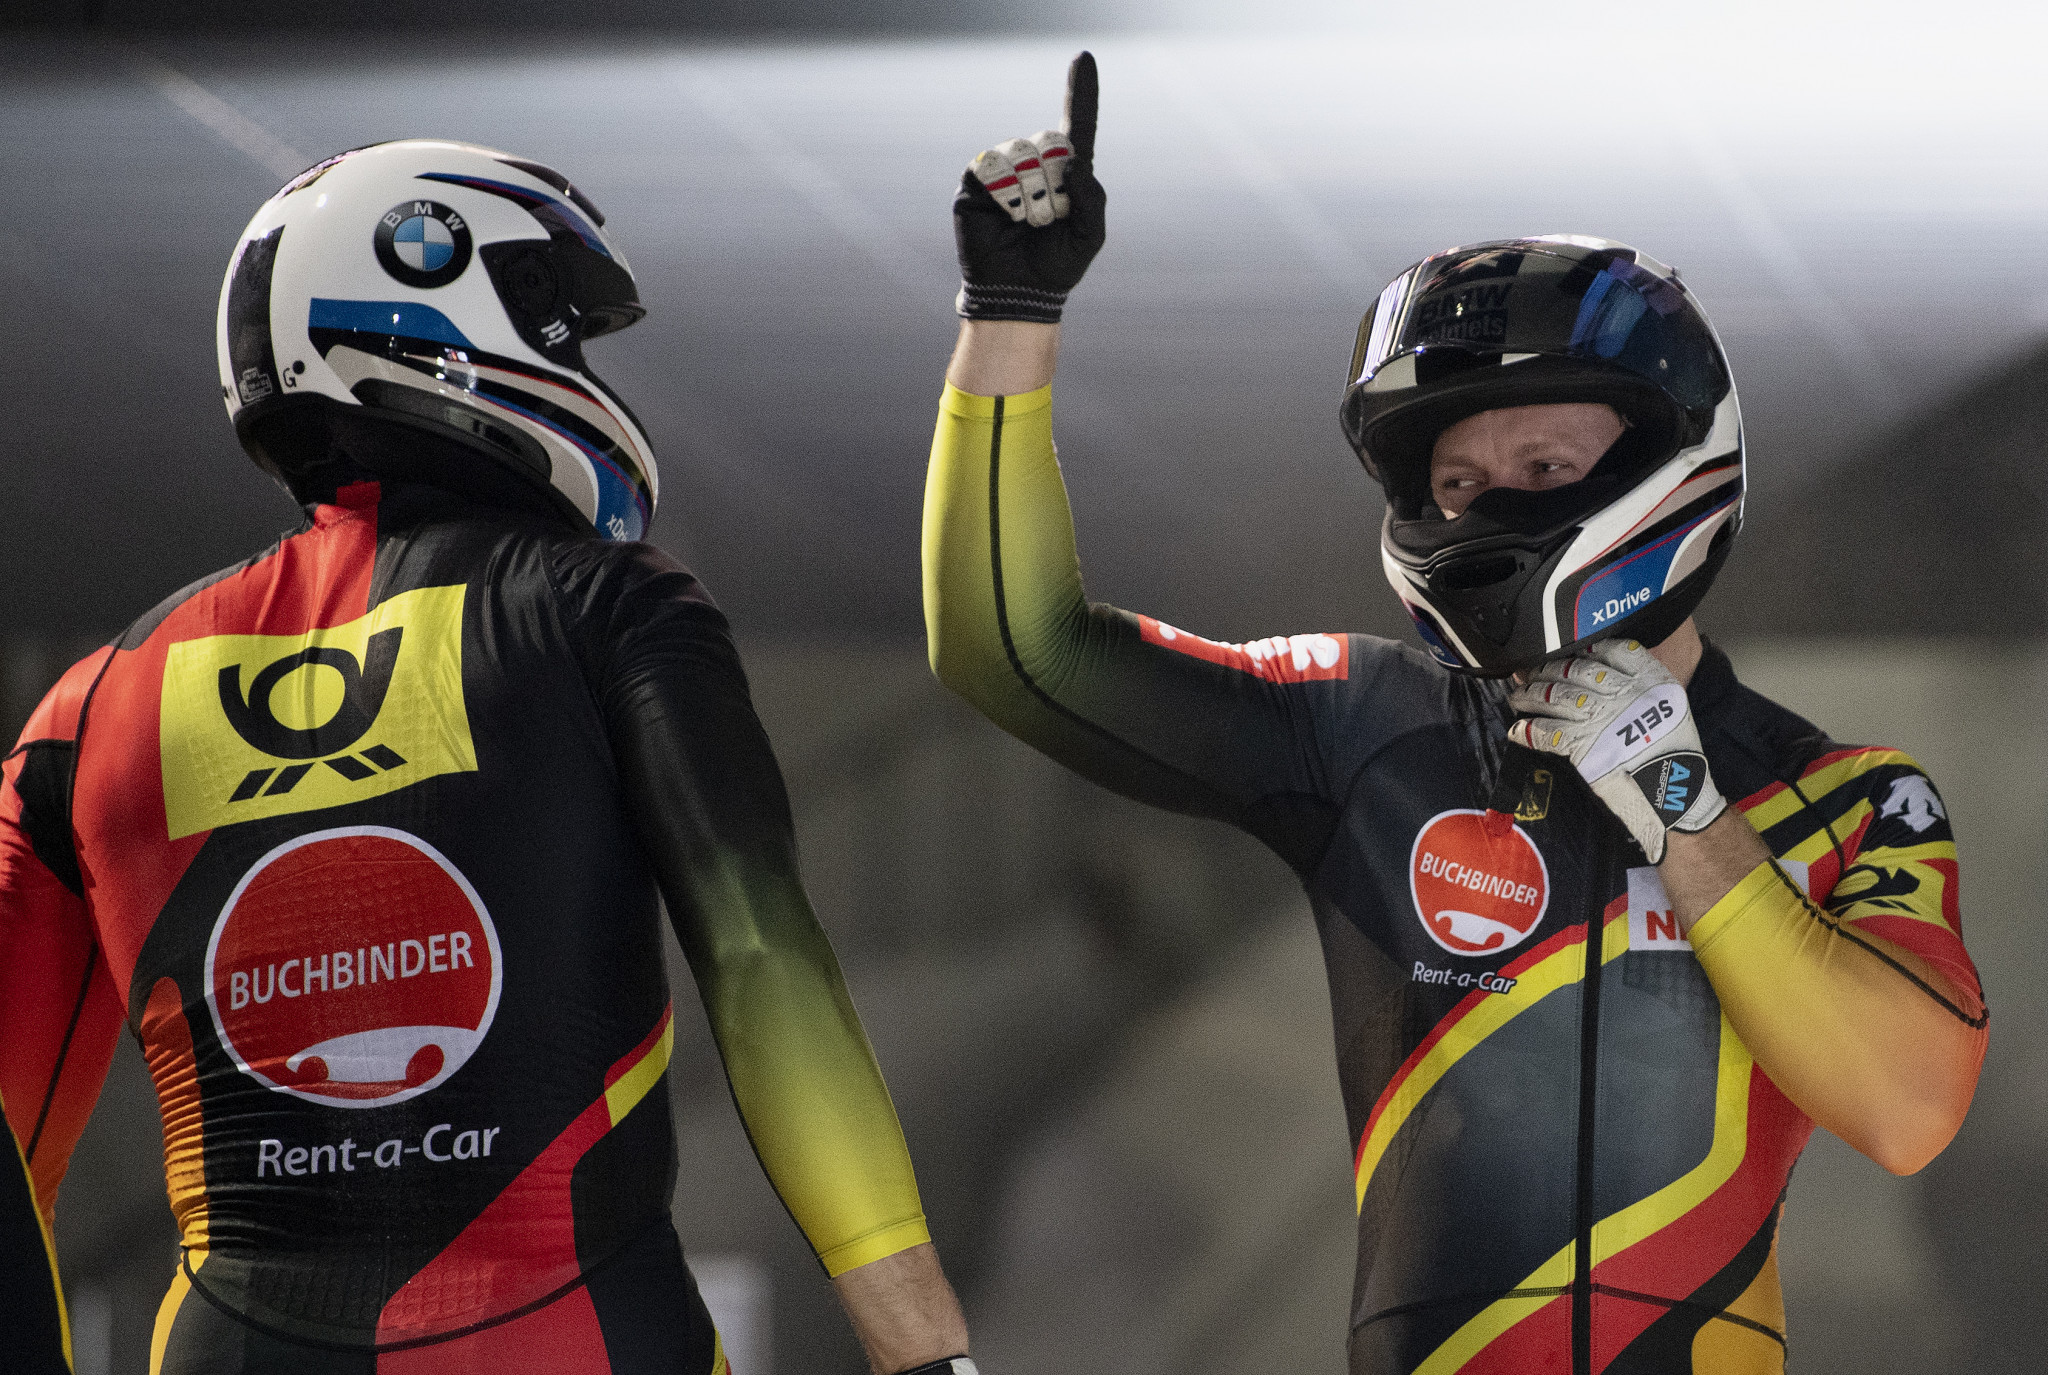 Luge World Championships move from Canada to Germany